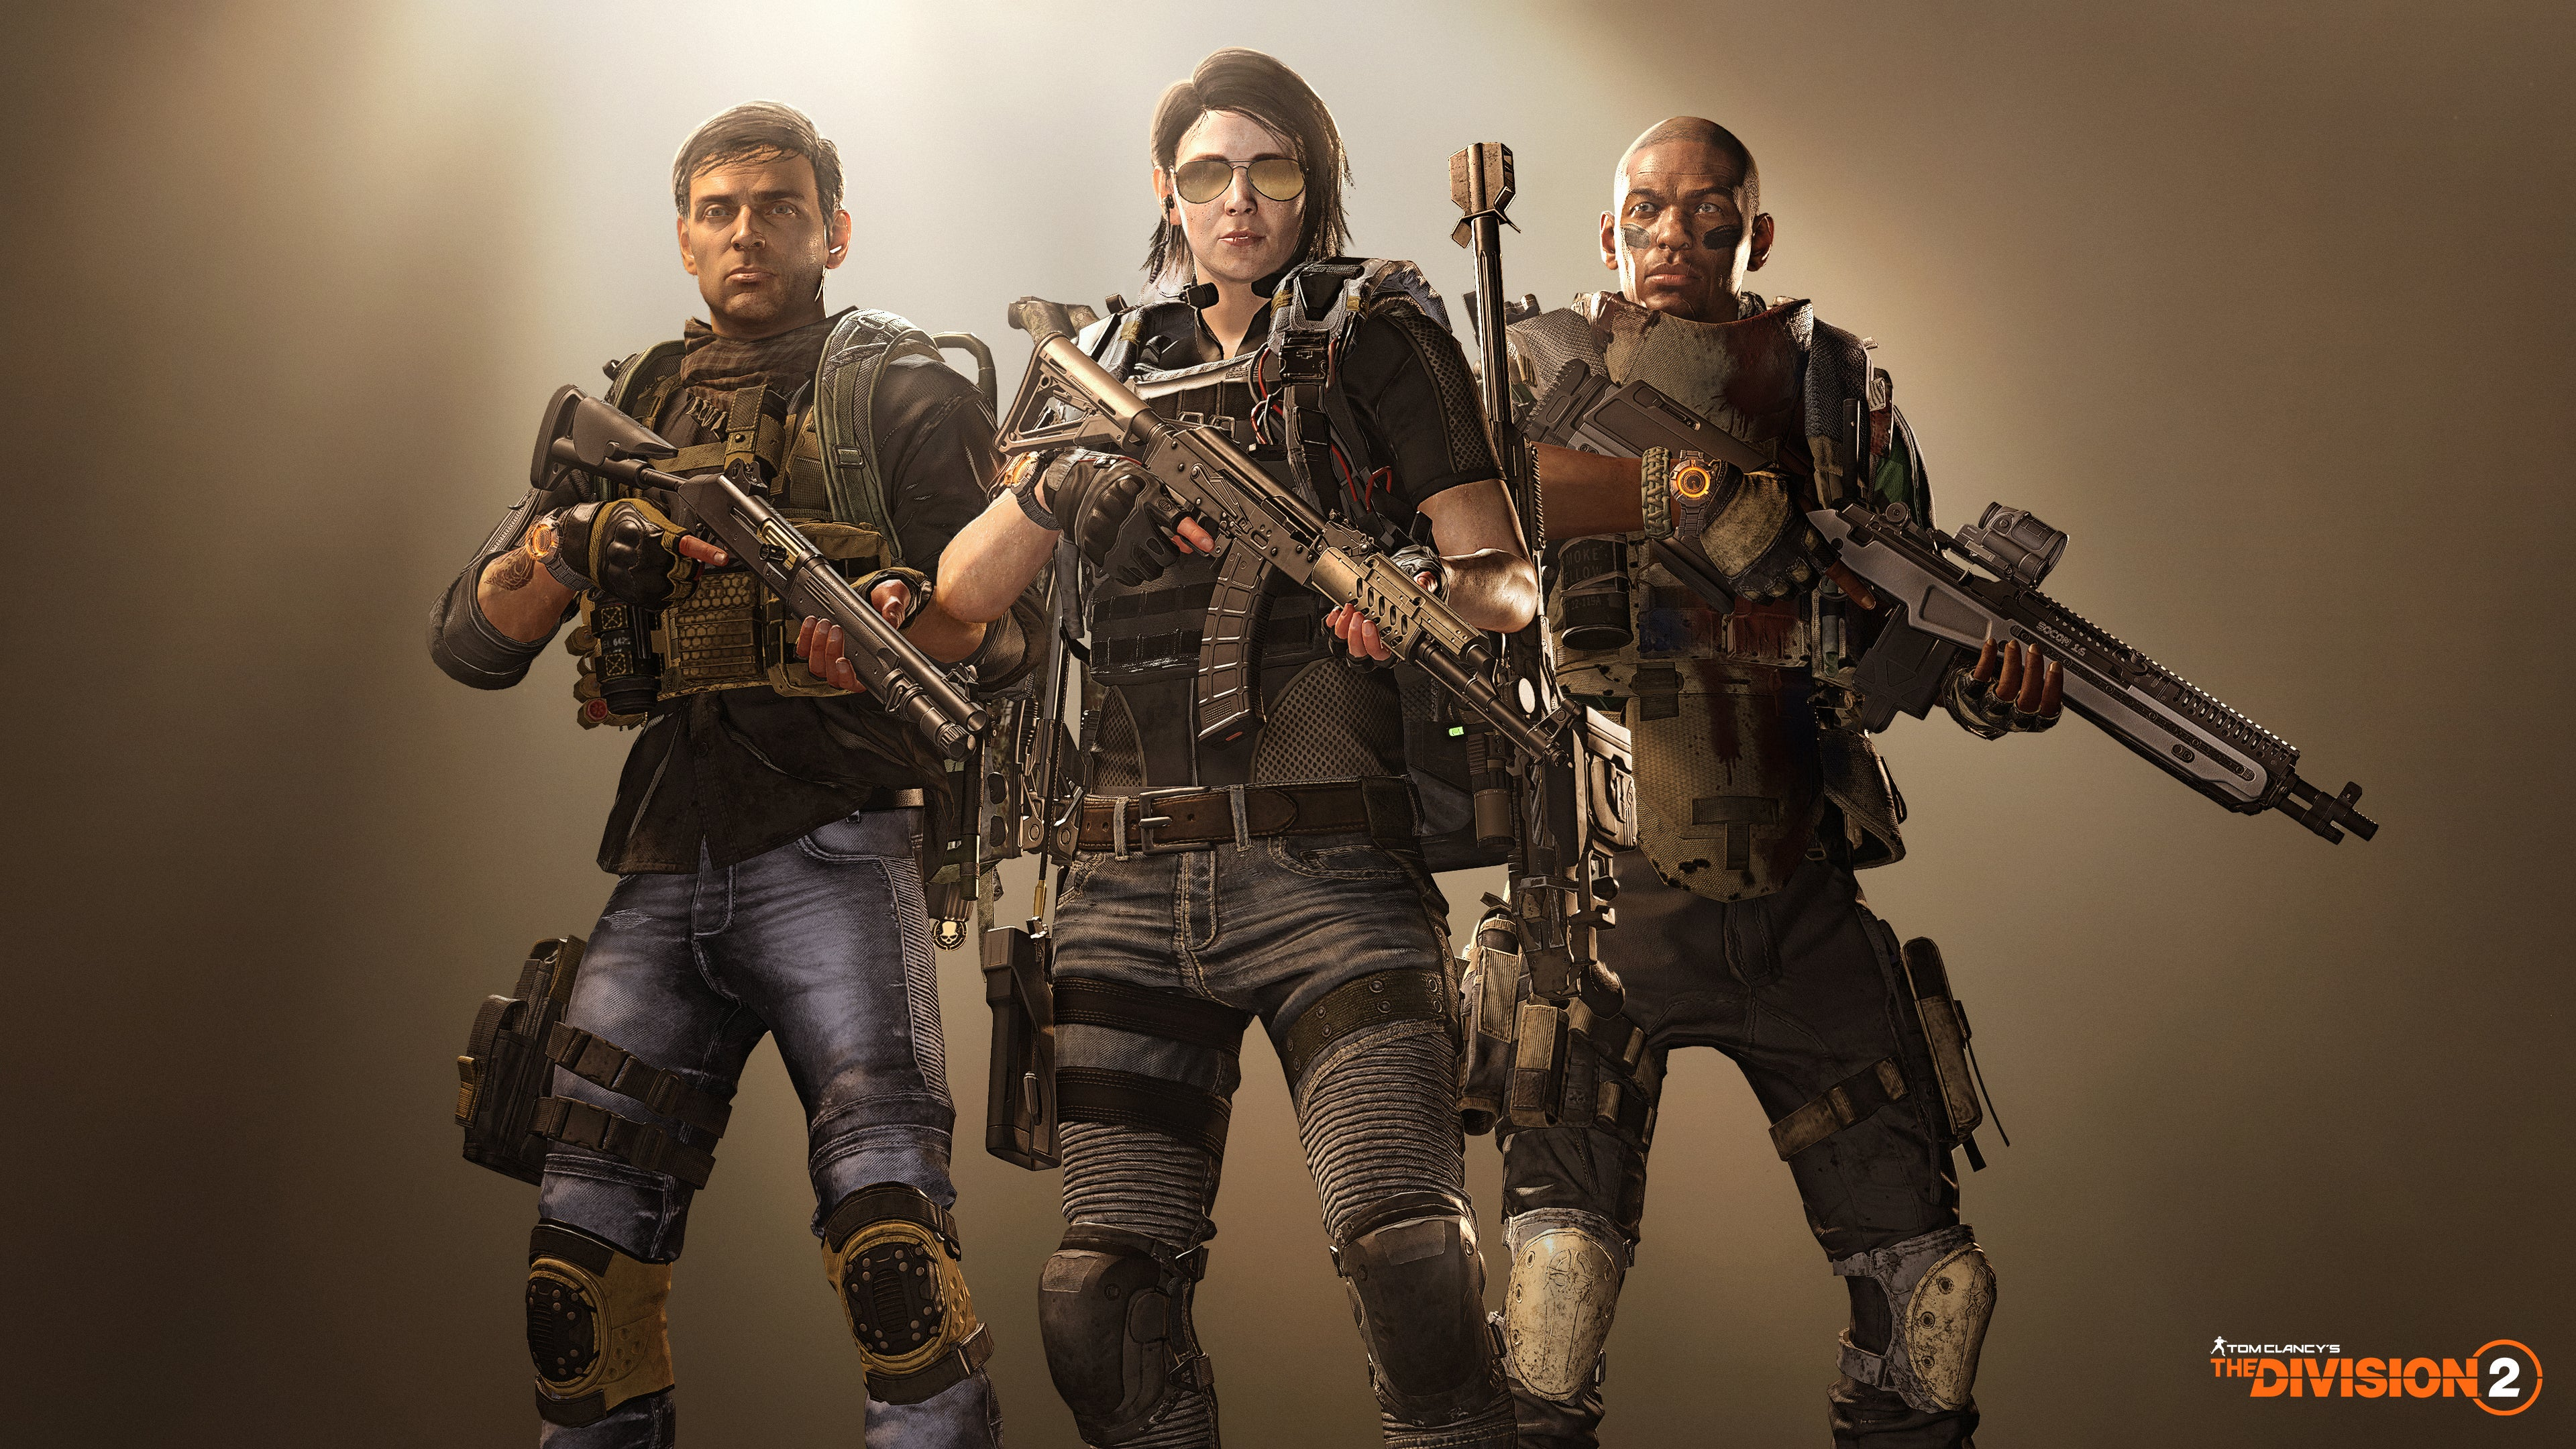 Wallpaper 4k The Division 2 Hard Wired 2019 Games Wallpapers 4k